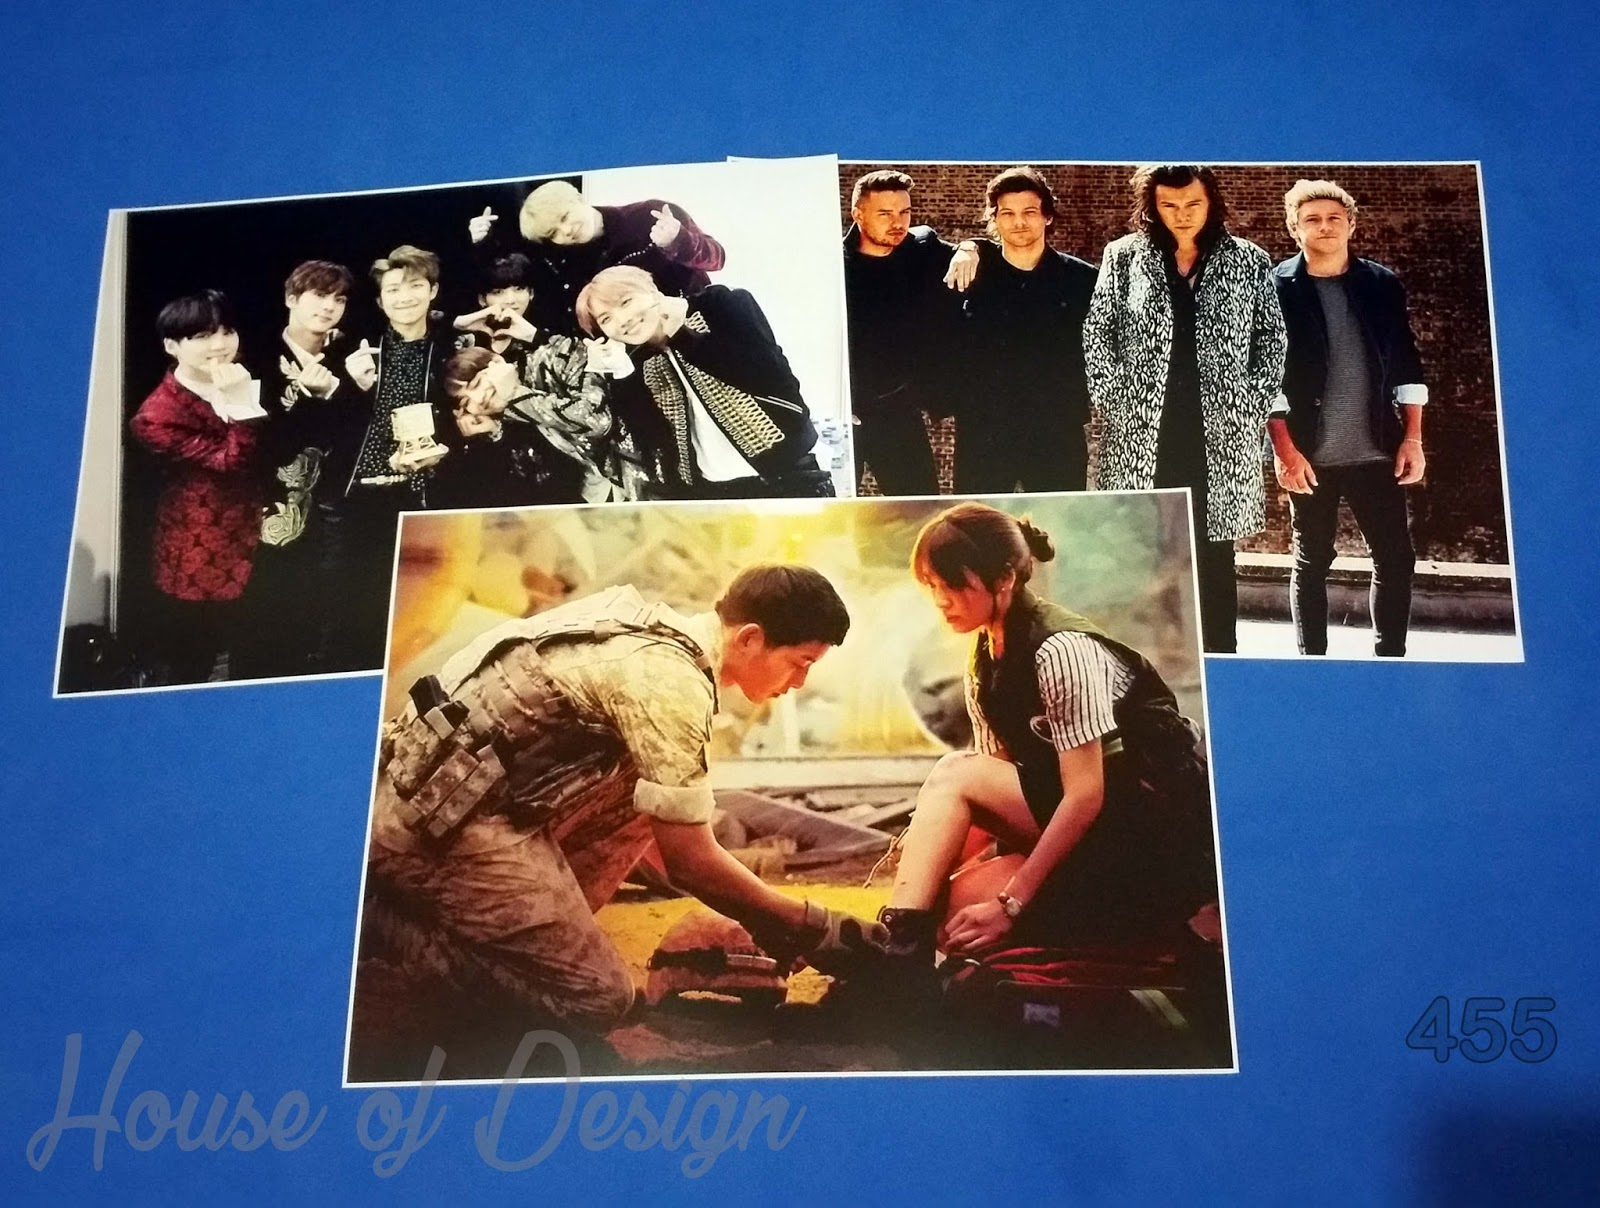 POSTER BTS, POSTER ONE DIRECTION, POSTER DESCENDANTS OF THE SUN UKURAN POSTER A4